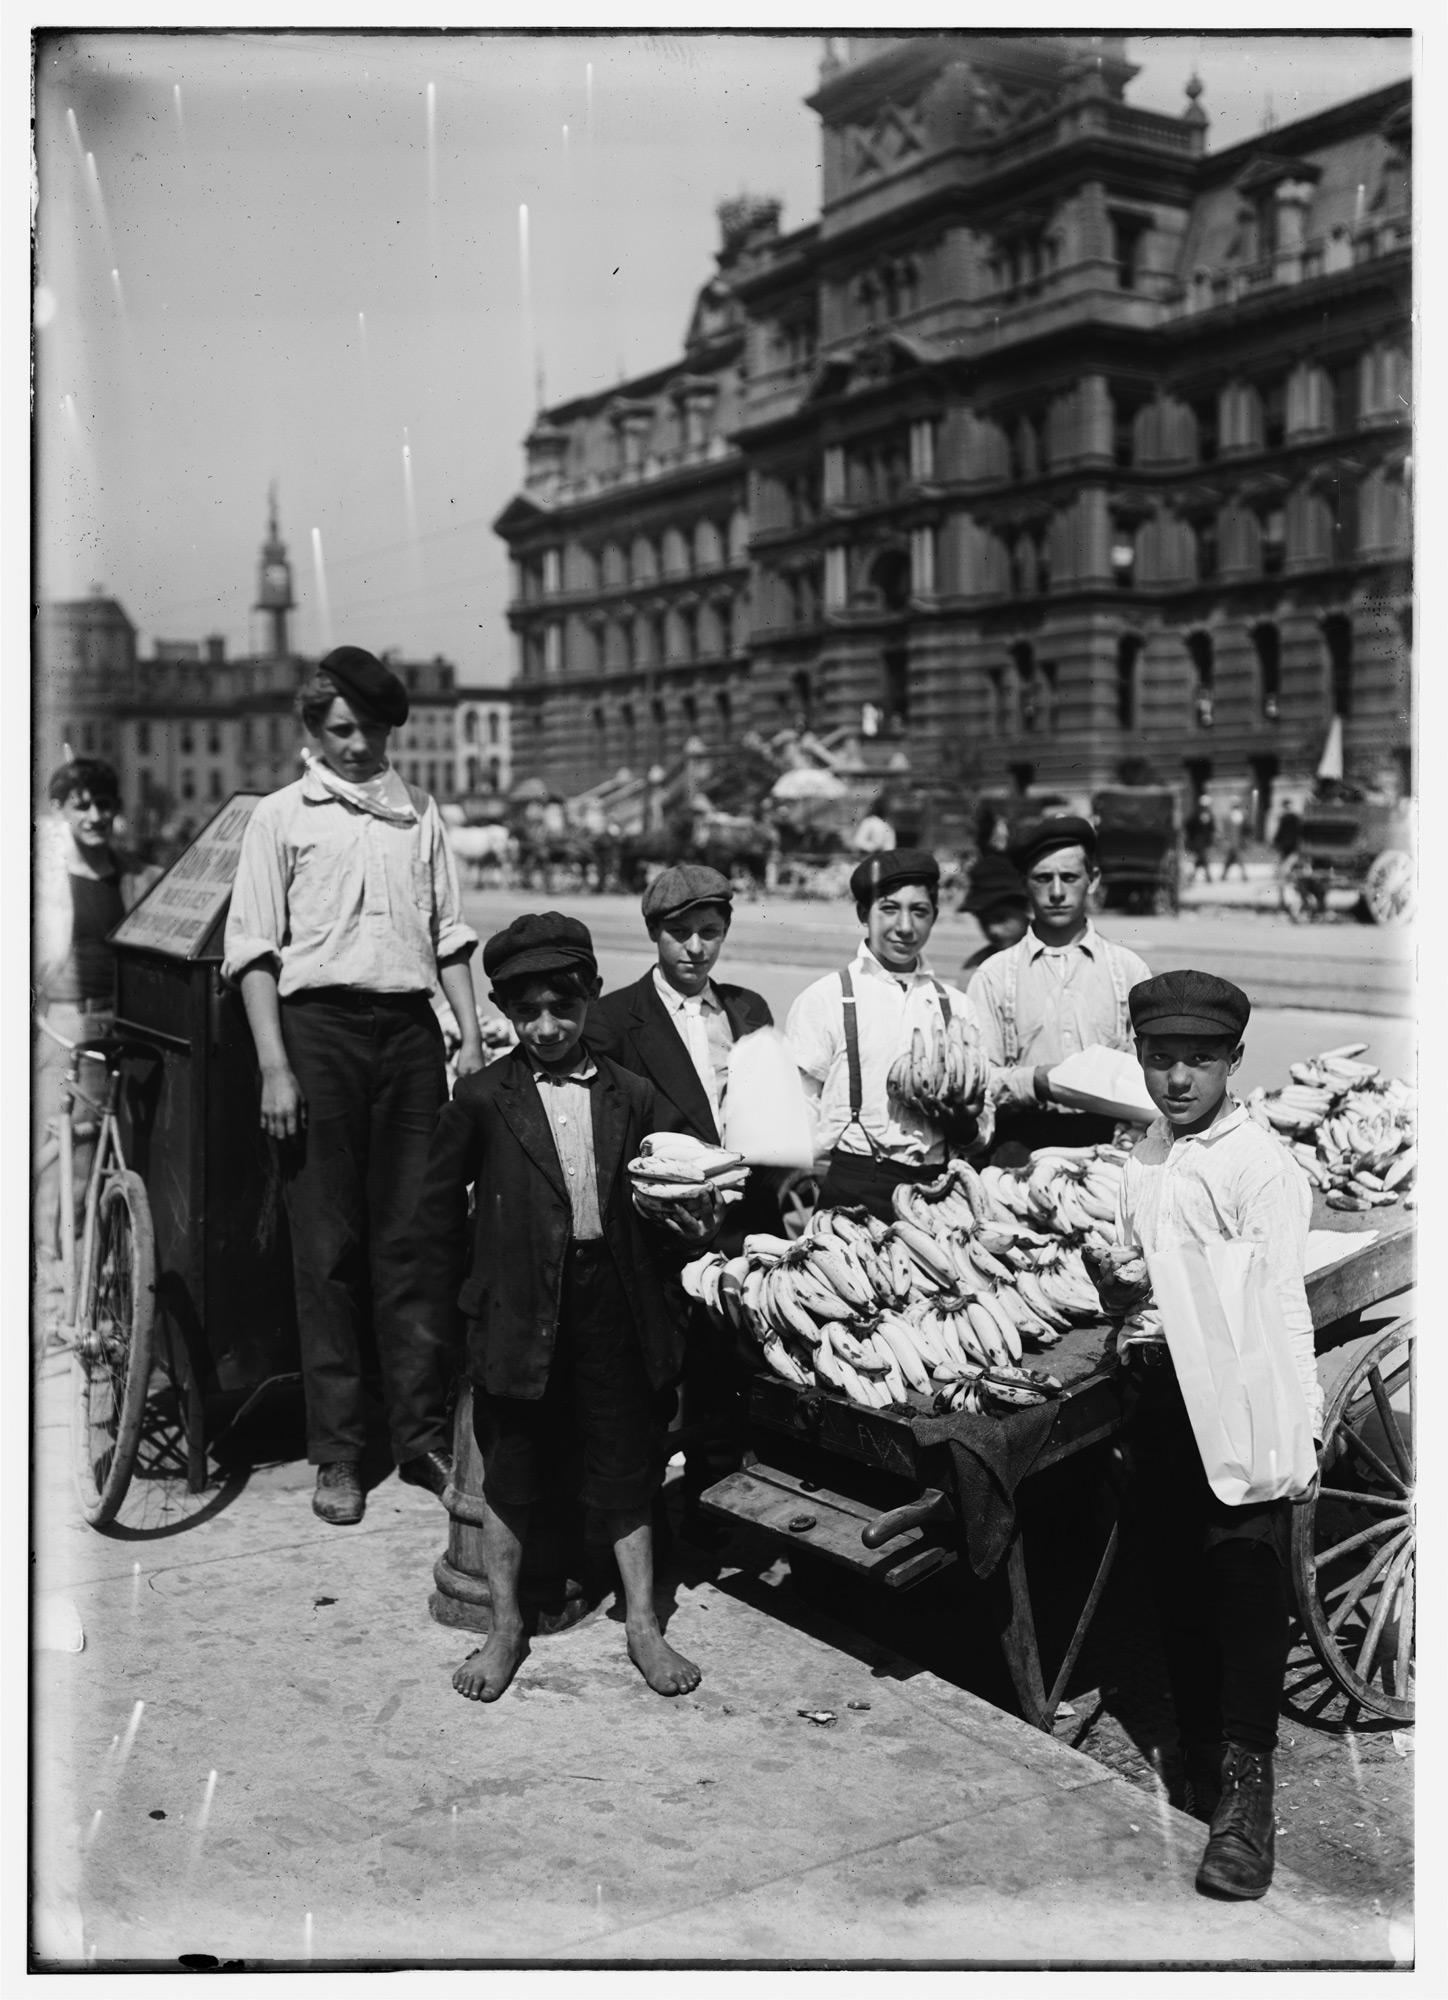 Lewis Wickes Hine /Indianapolis fruit venders, Italian boys, Indiana, August /(1908)